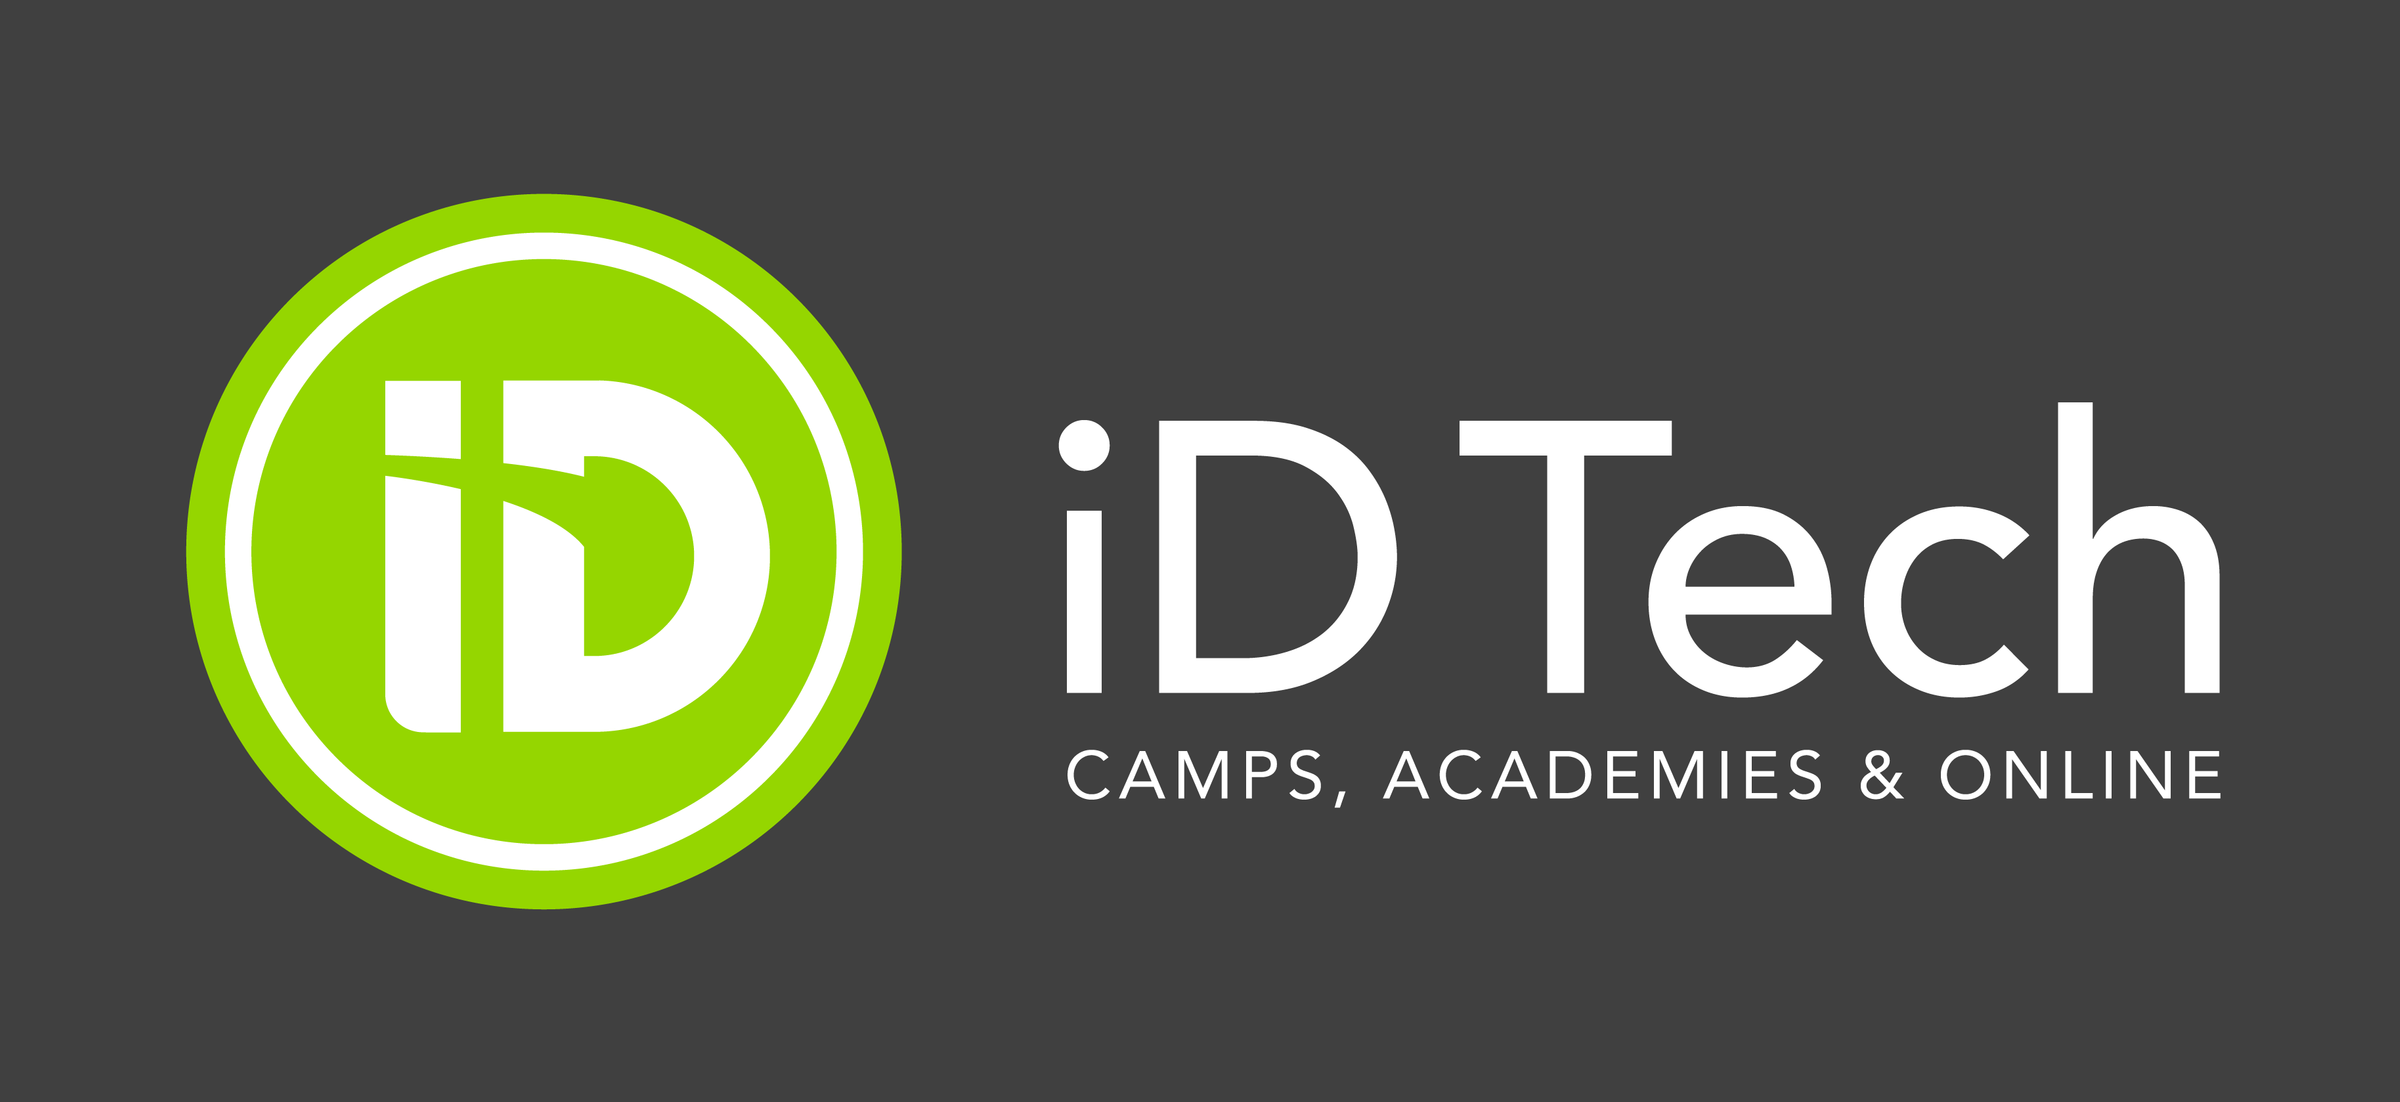 iD Tech Camps: #1 in STEM Education - Held at Emory University